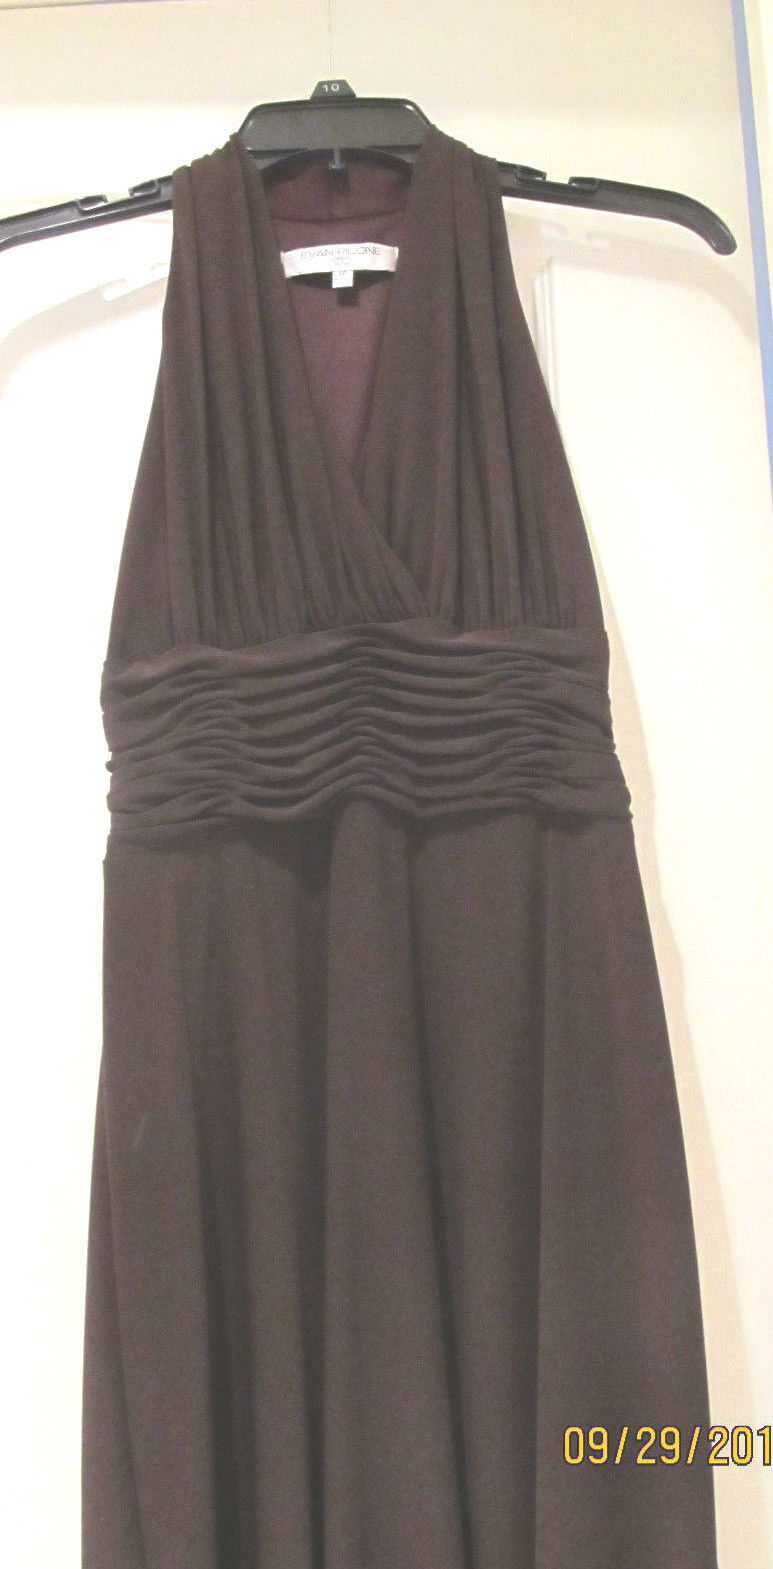 a3d49918443 NWOT Evan Picone Brown Polyester Spandex Stretch Sleeveless Knee Length  Dress 2P